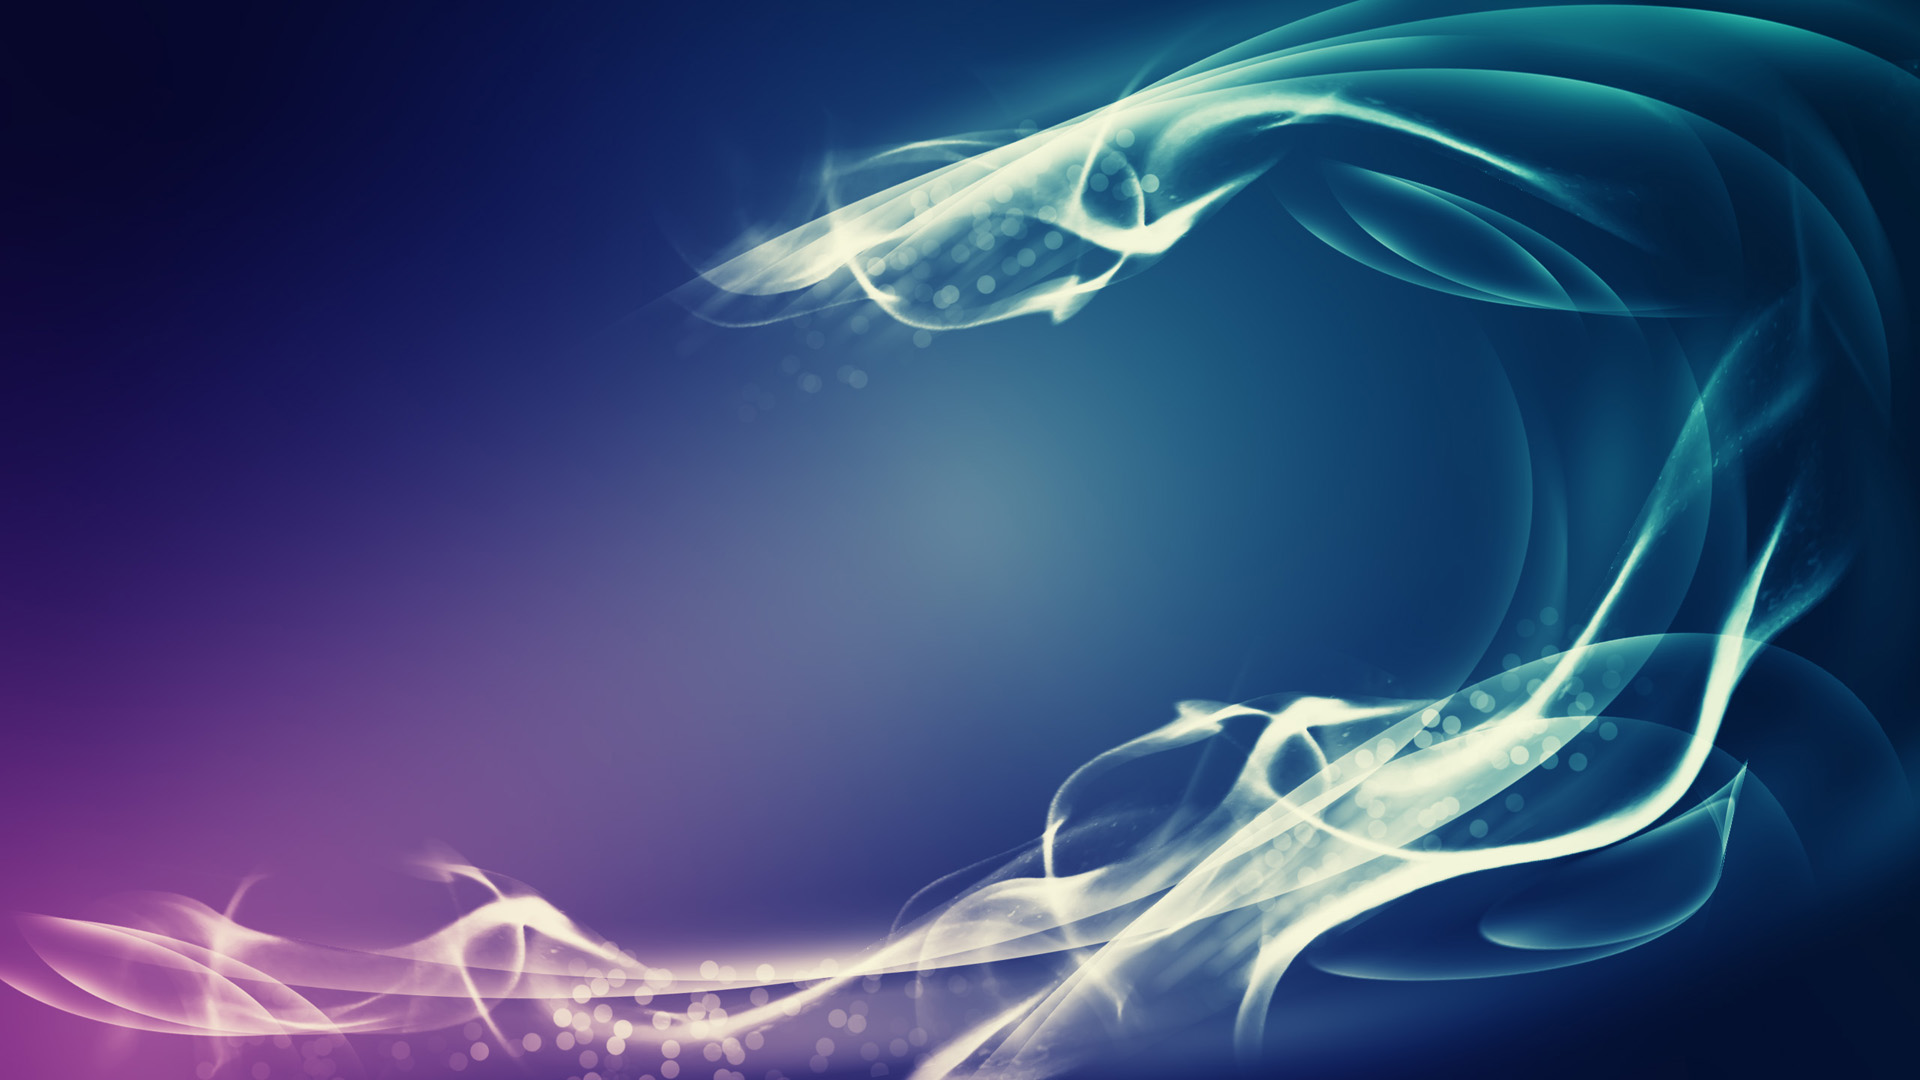 indigo abstract wallpaper hd-#17